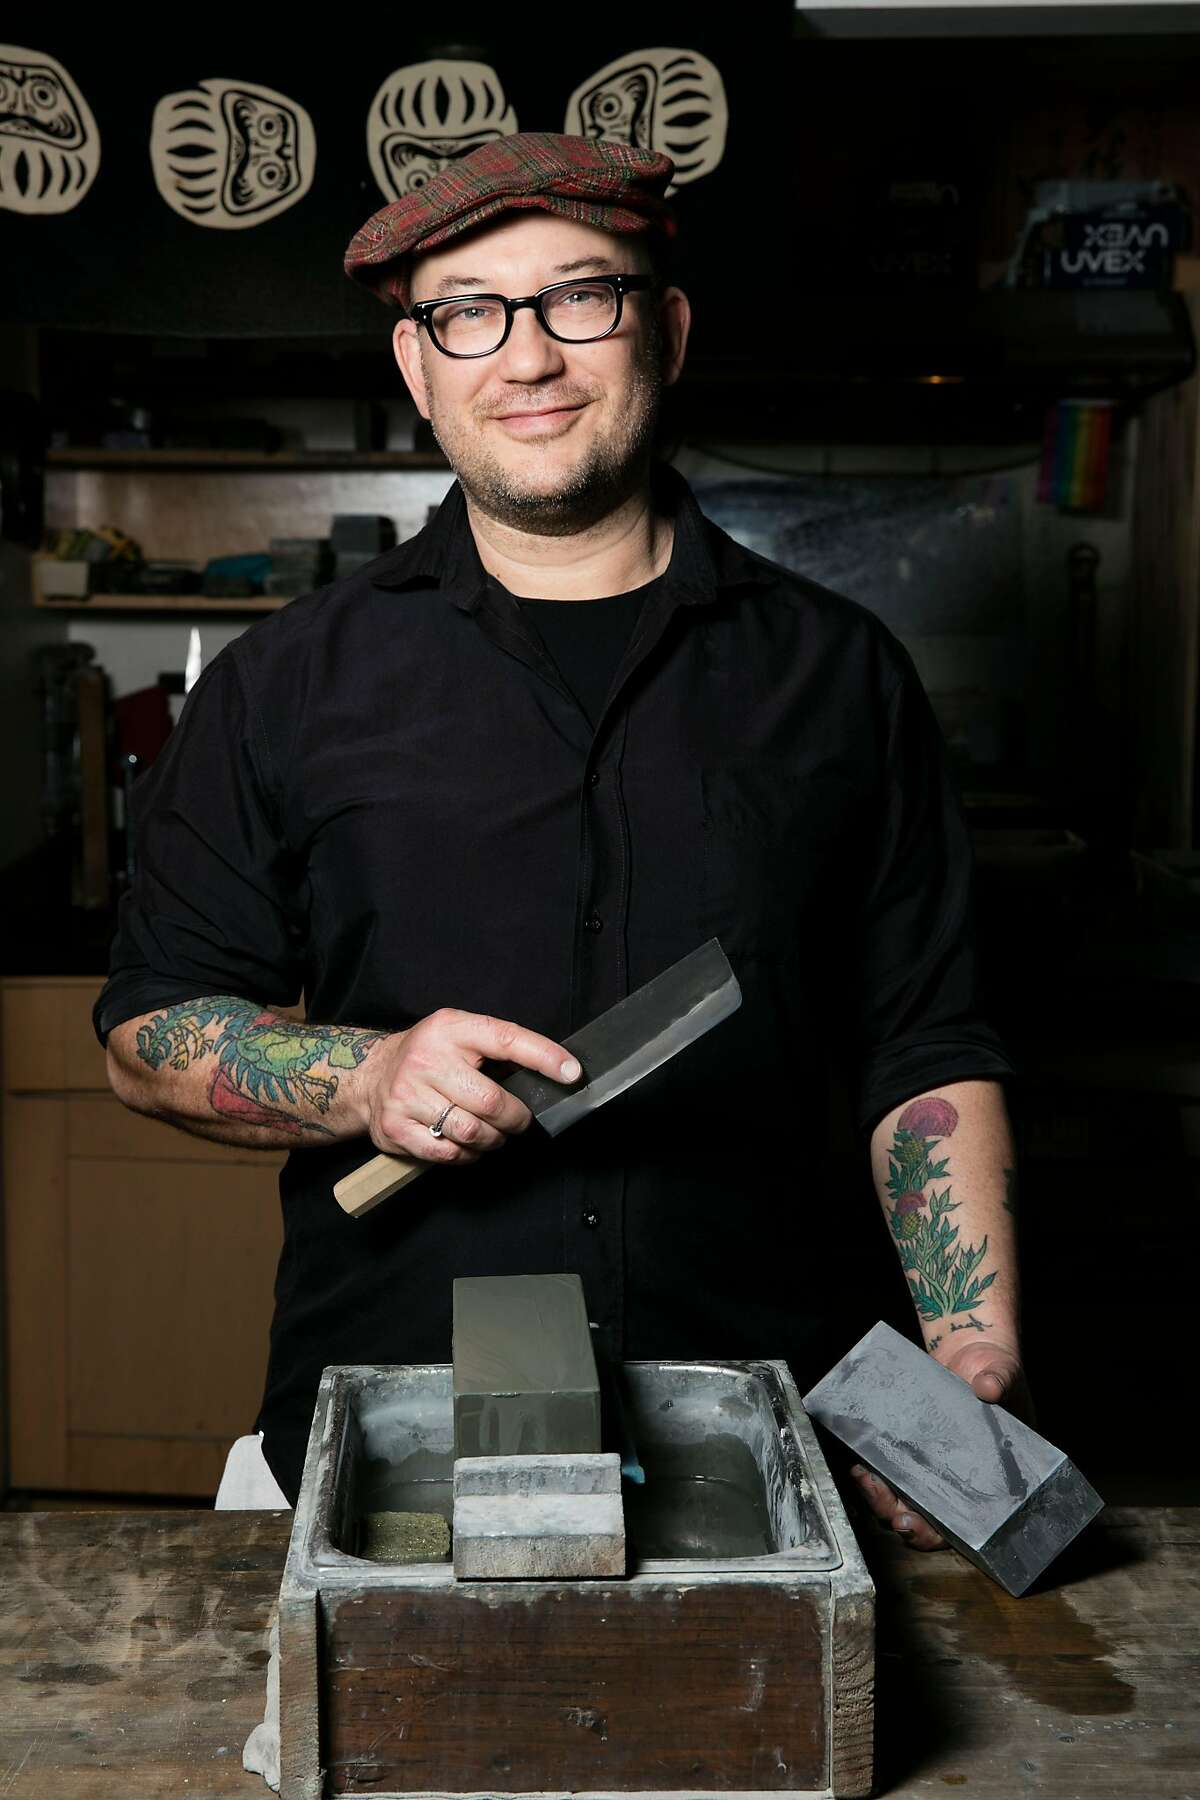 """Bernal Cutlery's Josh Donald is the author of new book, """"Knives: The Definitive Guide to Knives, Knife Care, and Cutting Techniques, with Recipes from Great Chefs"""" (Chronicle Books; $27.50)"""